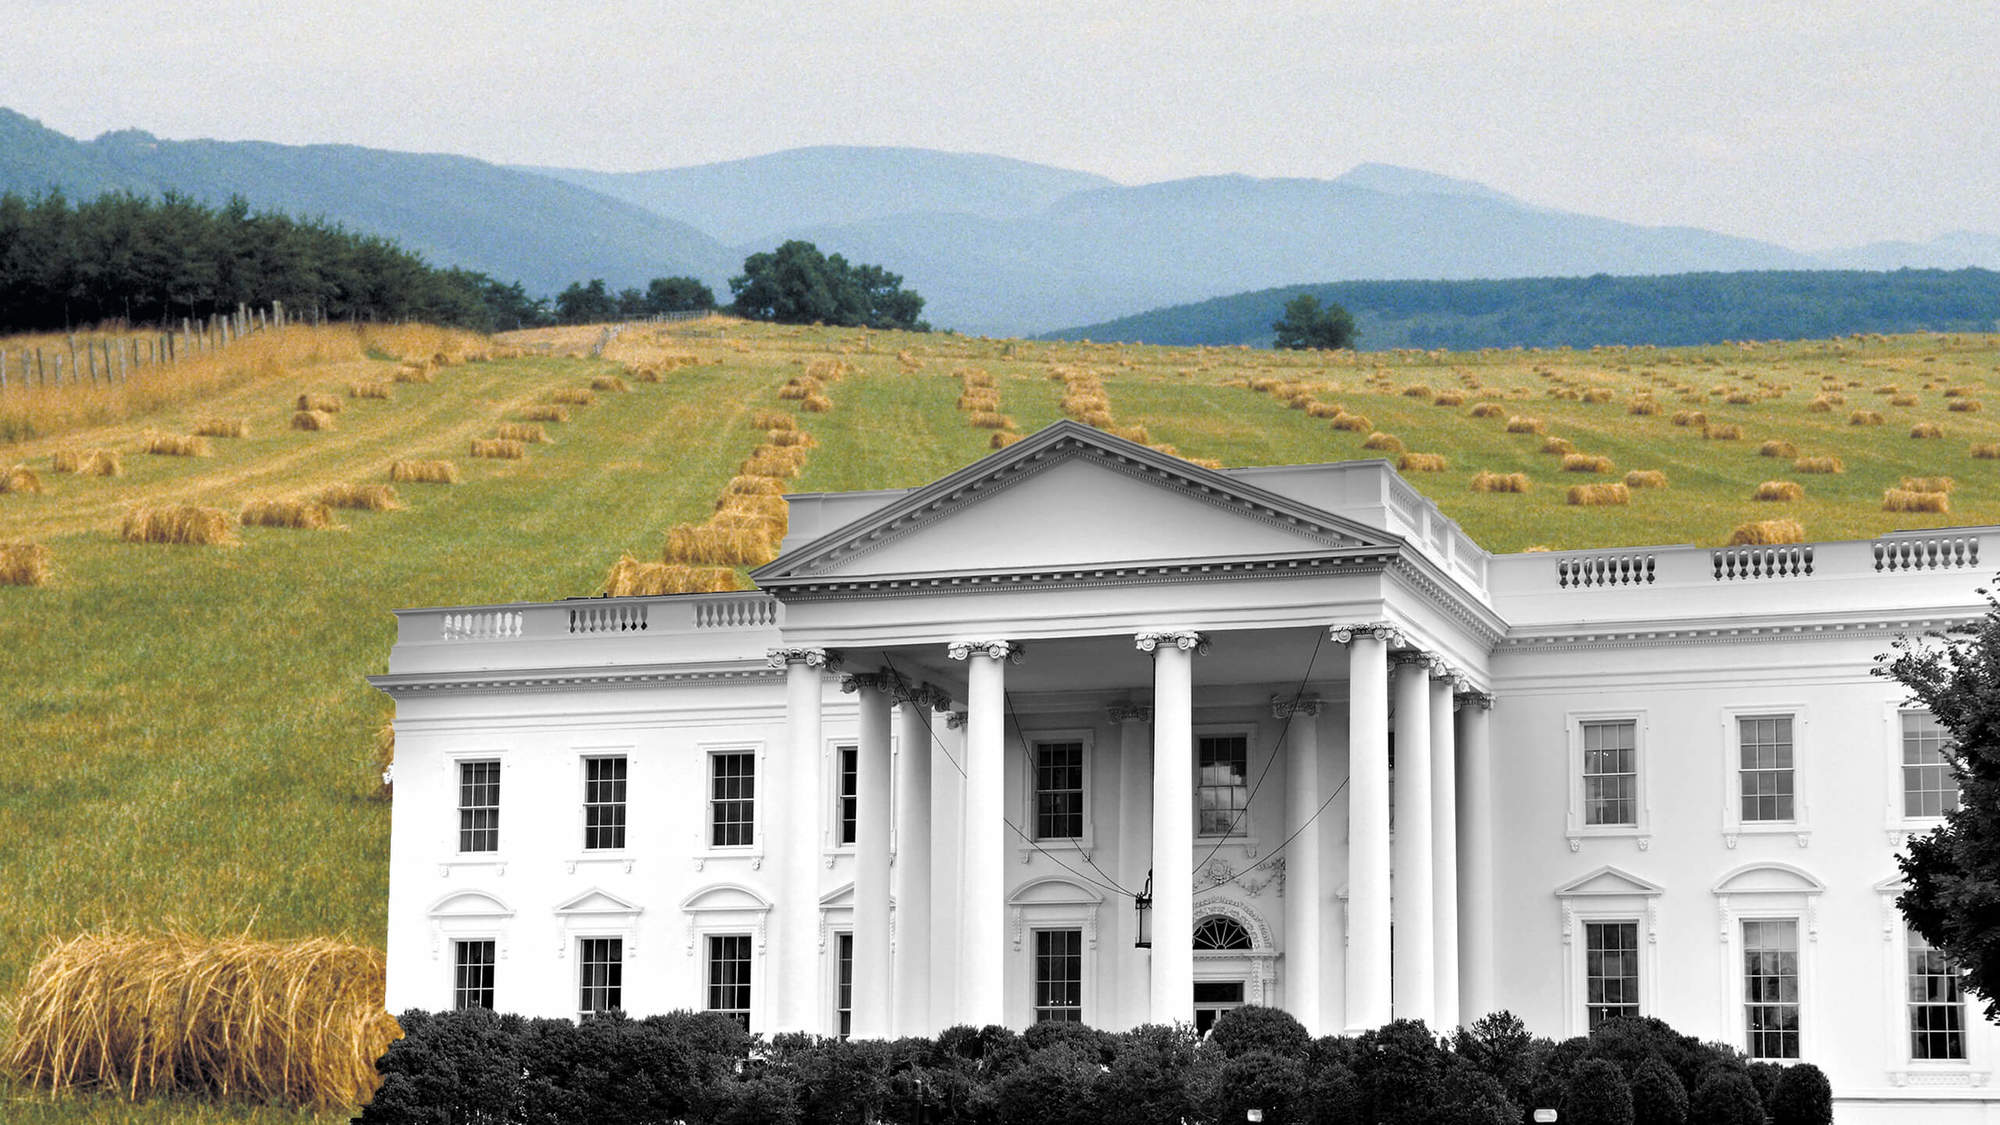 A black and white photo of the White House in front of a hay farm. November 2020